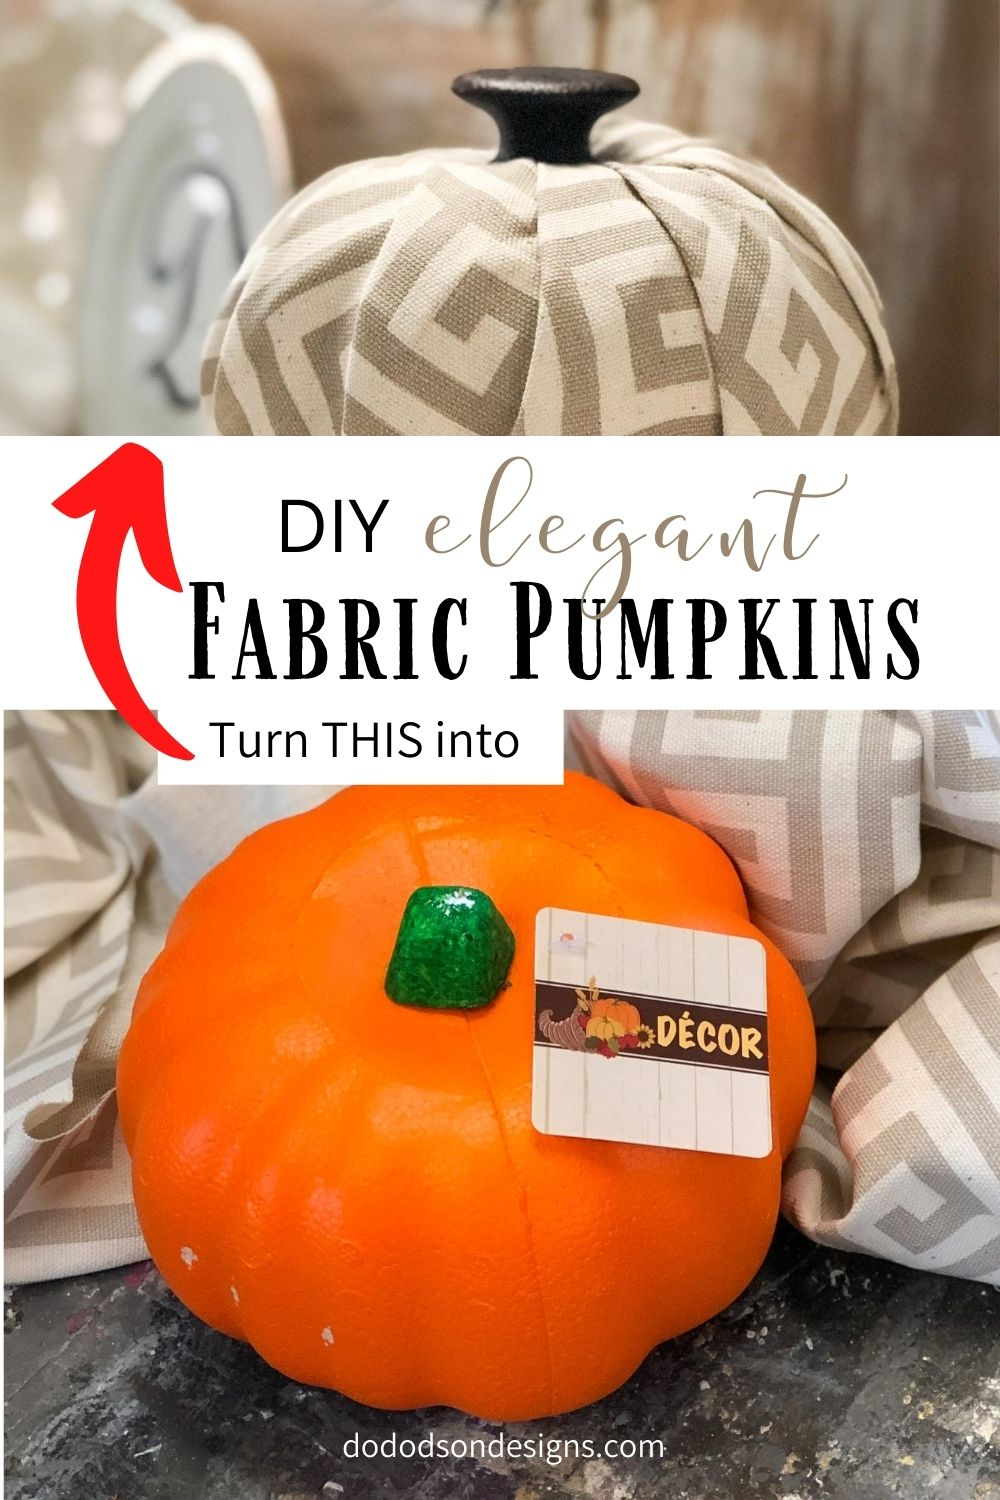 DIY No-Sew Fabric Pumpkins | 5 Easy steps